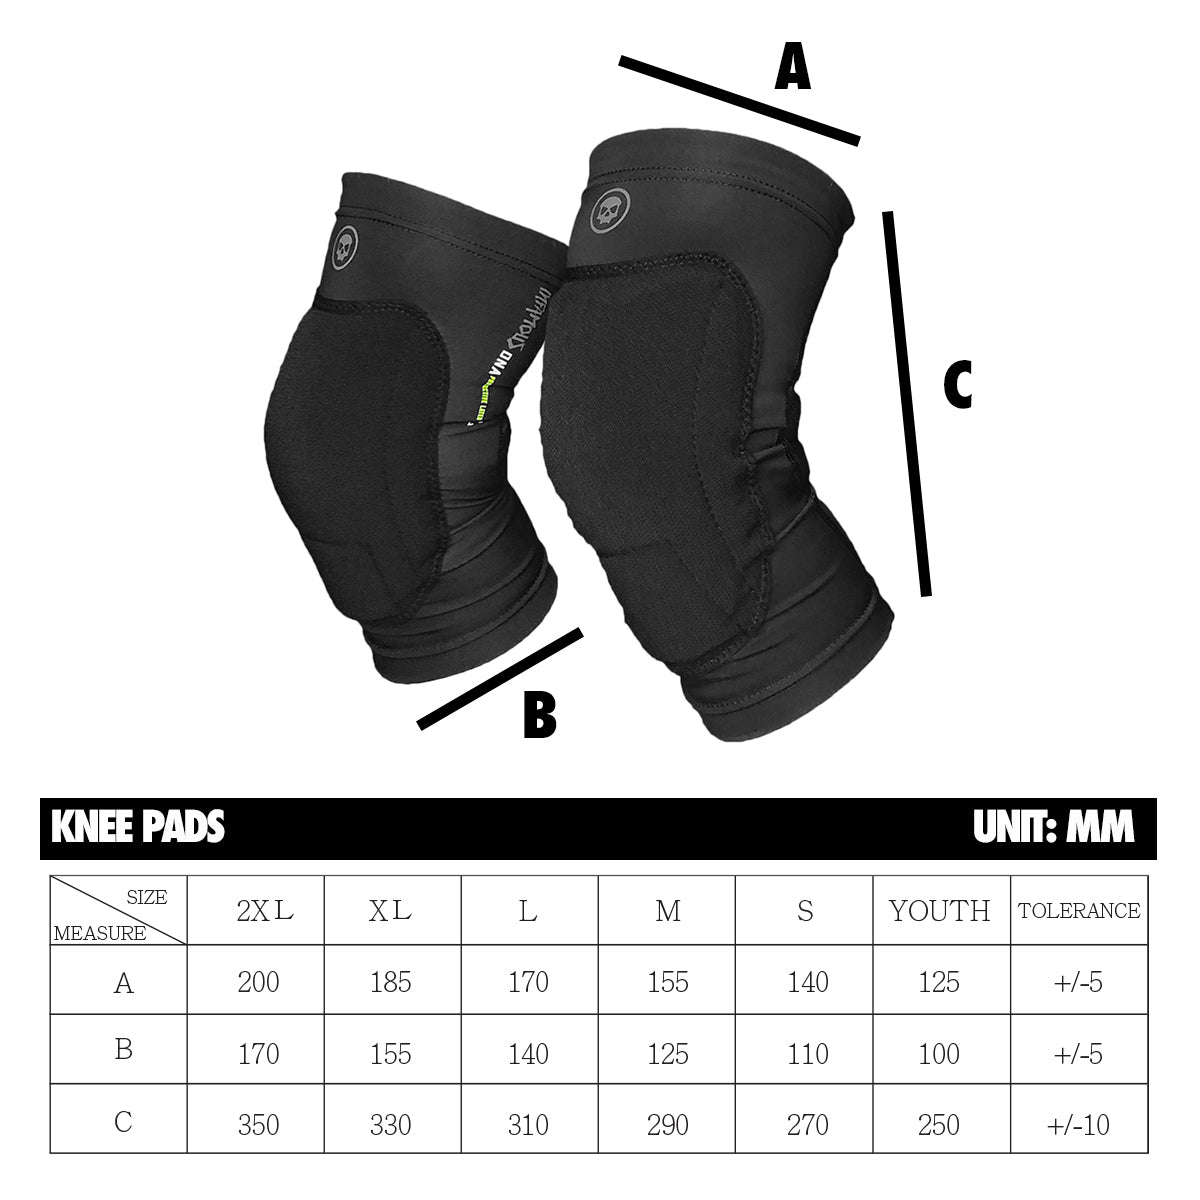 Infamous Pro DNA Knee Pad Sizing Chart